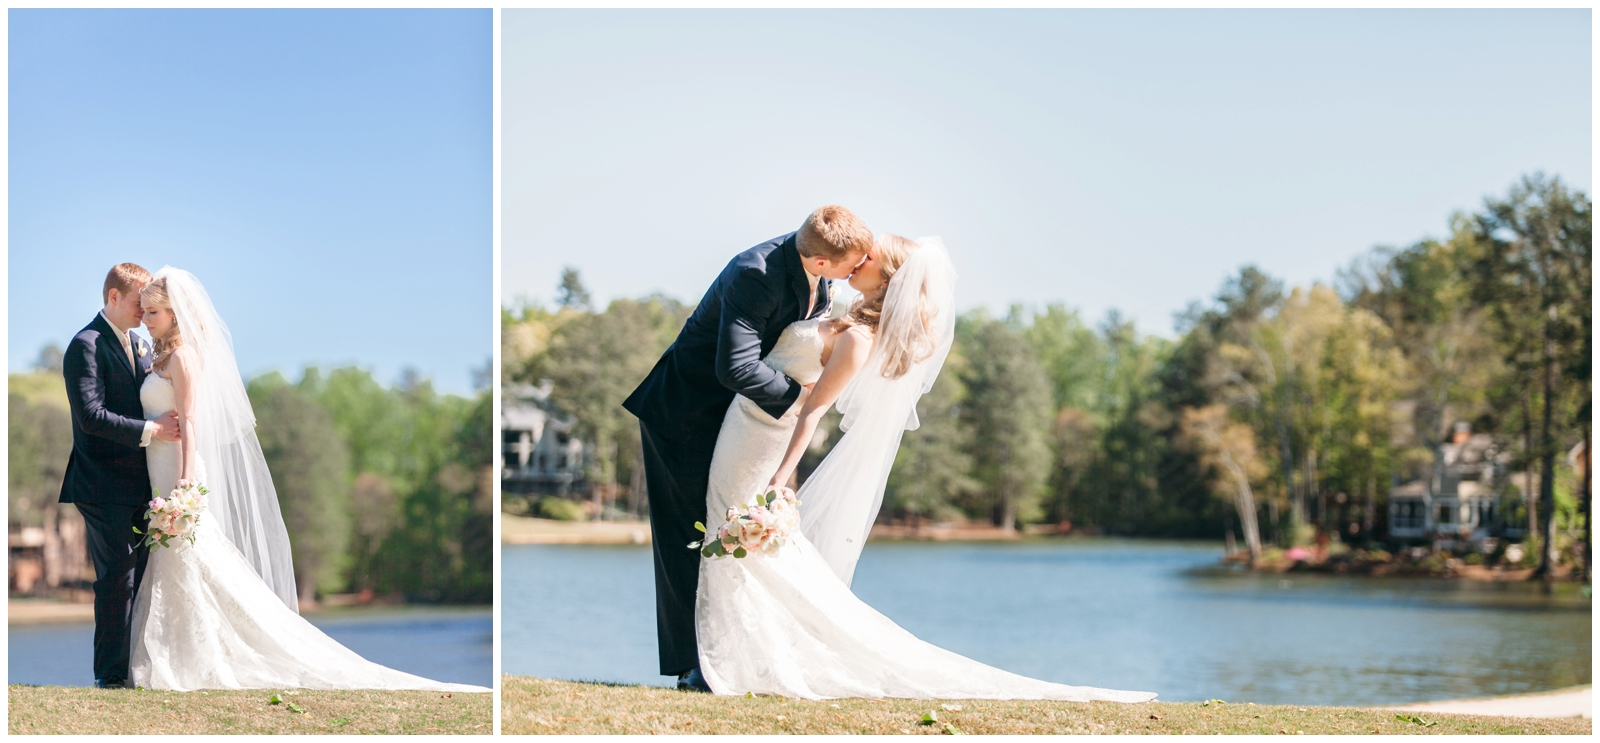 Morgan & Kyle_RoswellWedding_ArdentStory_0017